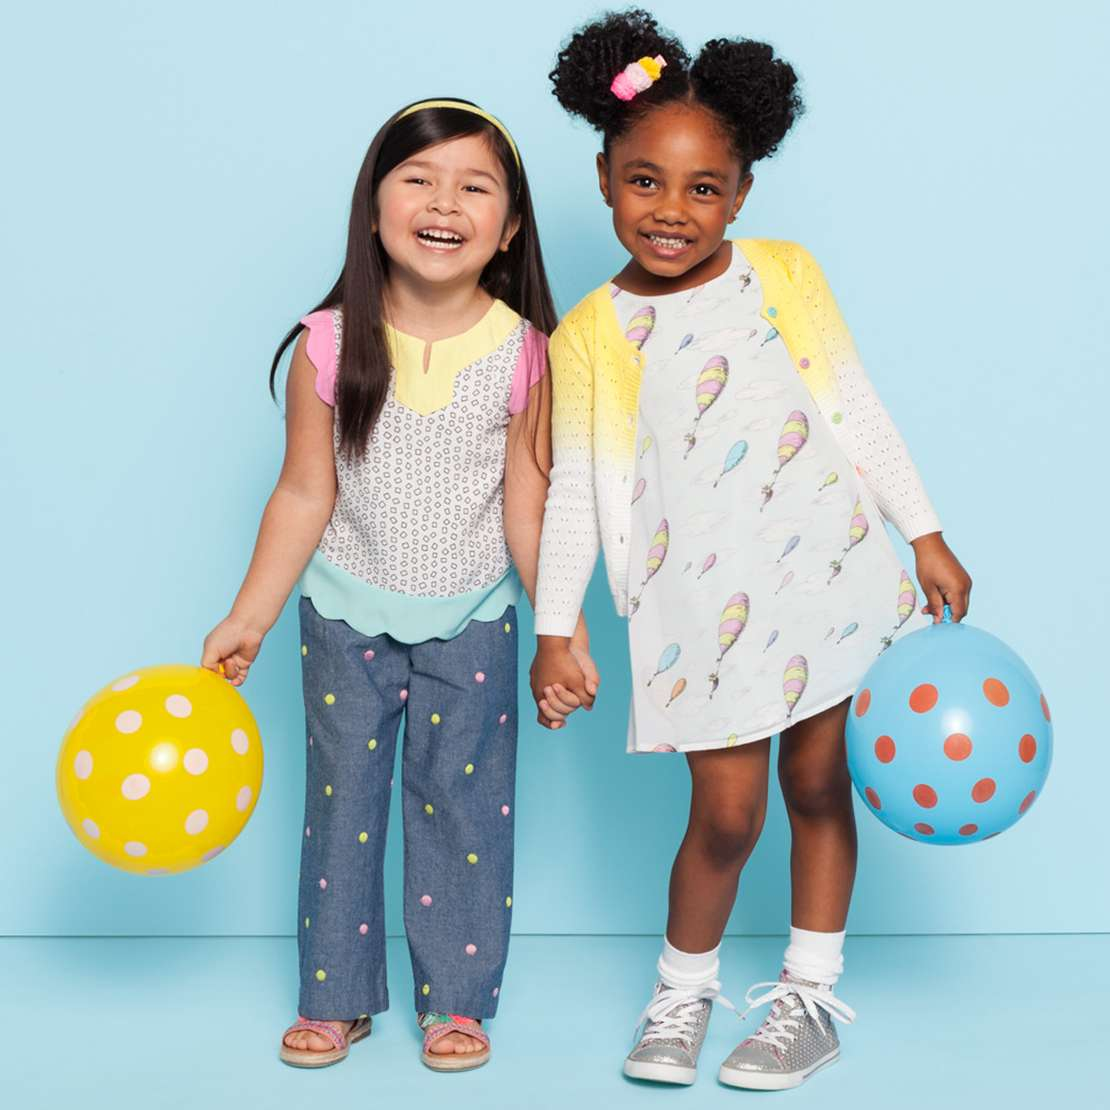 Dress to impress with Disney clothes. Shop for hoodies, shirts, denim, activewear, pajamas and more at Disney Store.